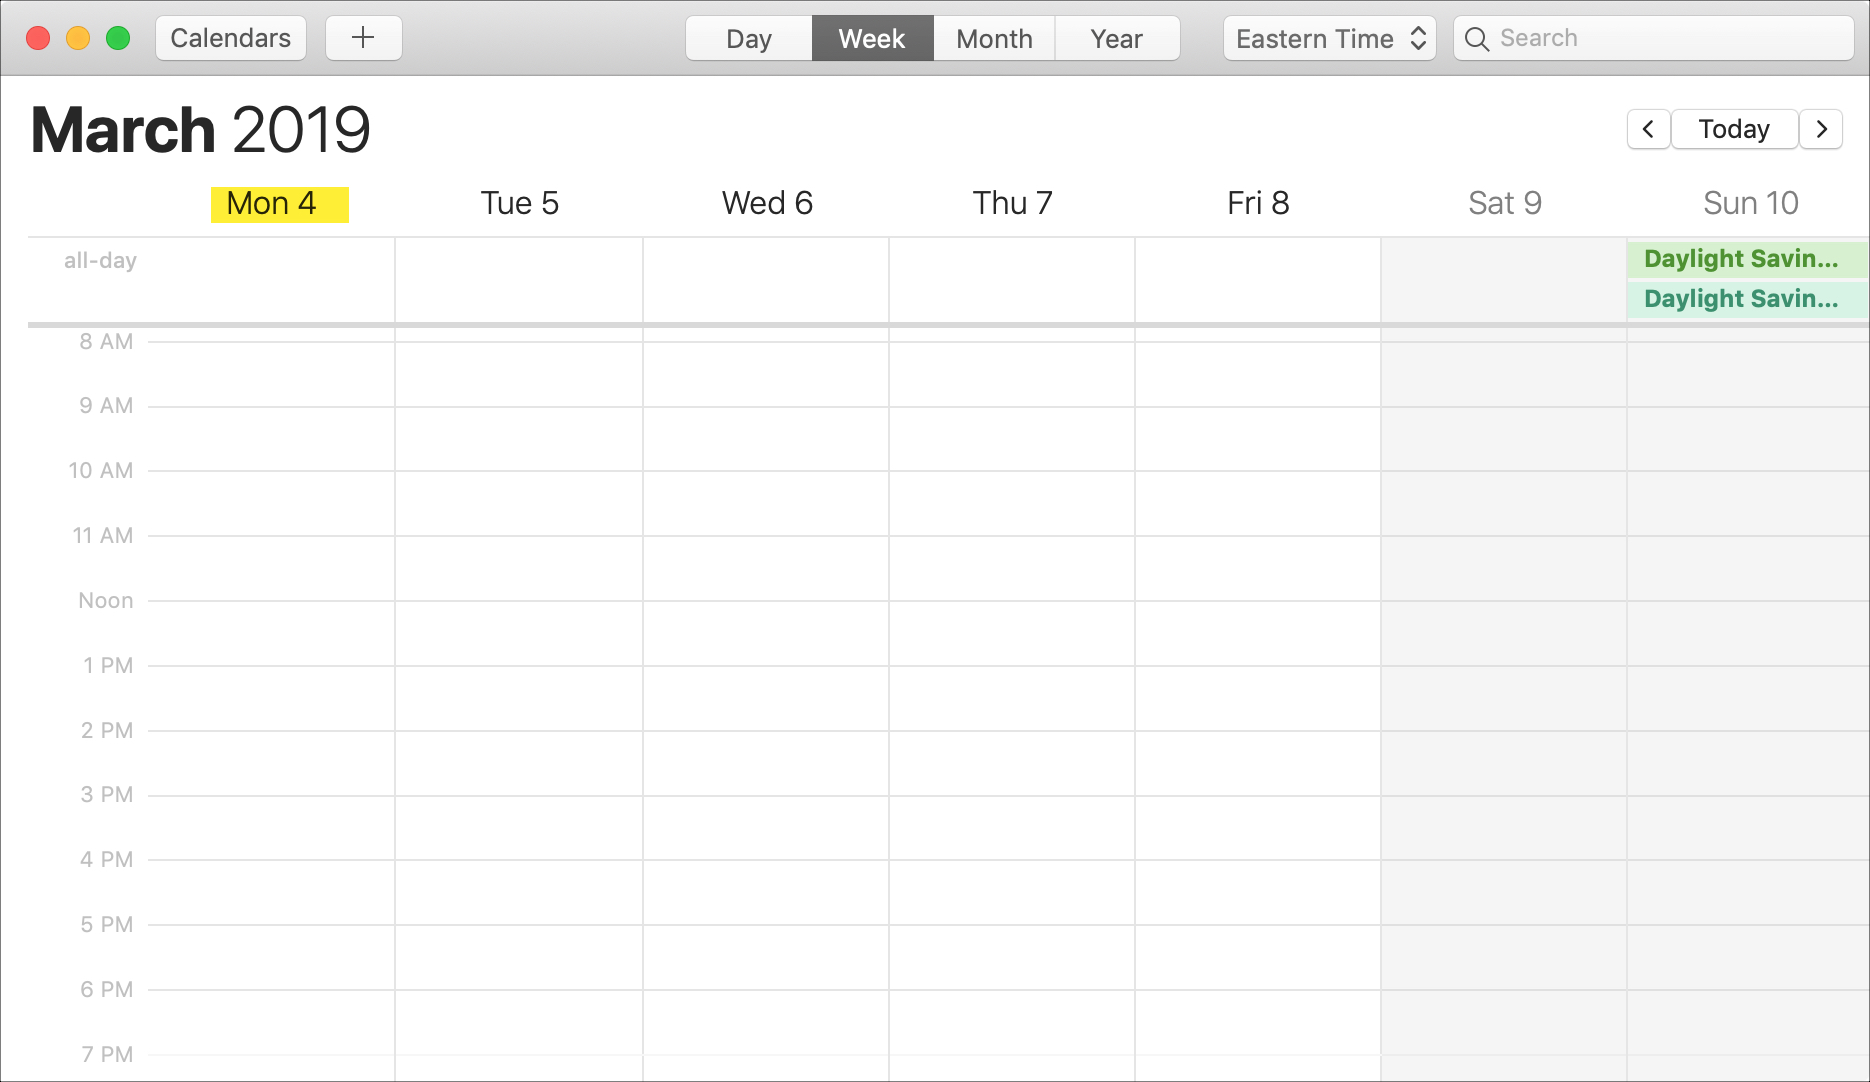 Calendar on Mac Week Starts on Monday